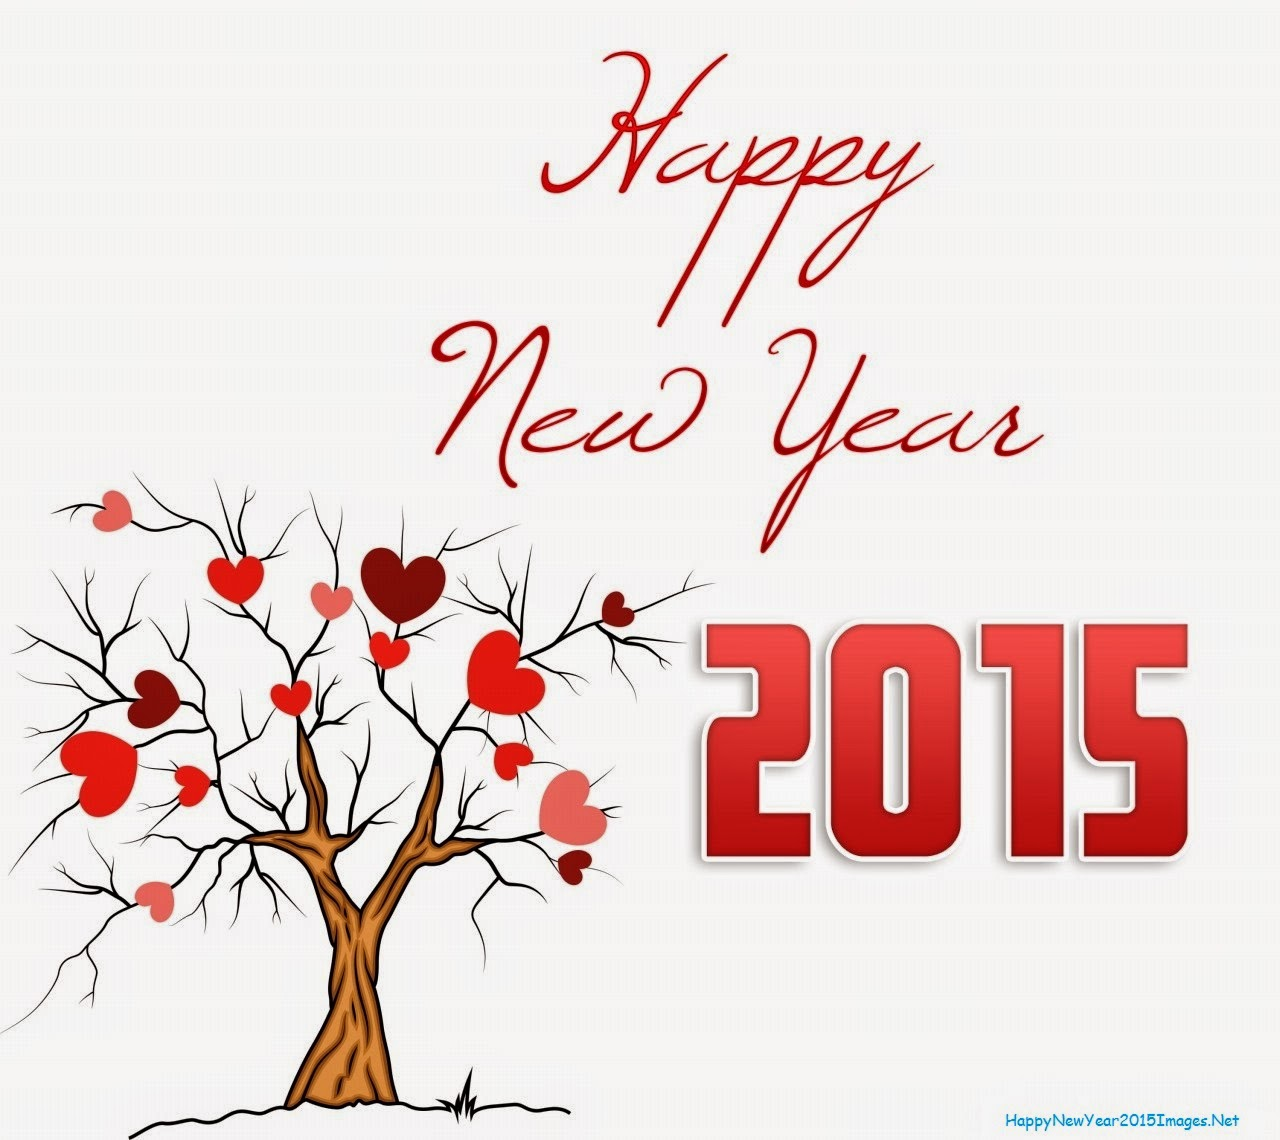 Happy New Year 2015 Hearts Tree